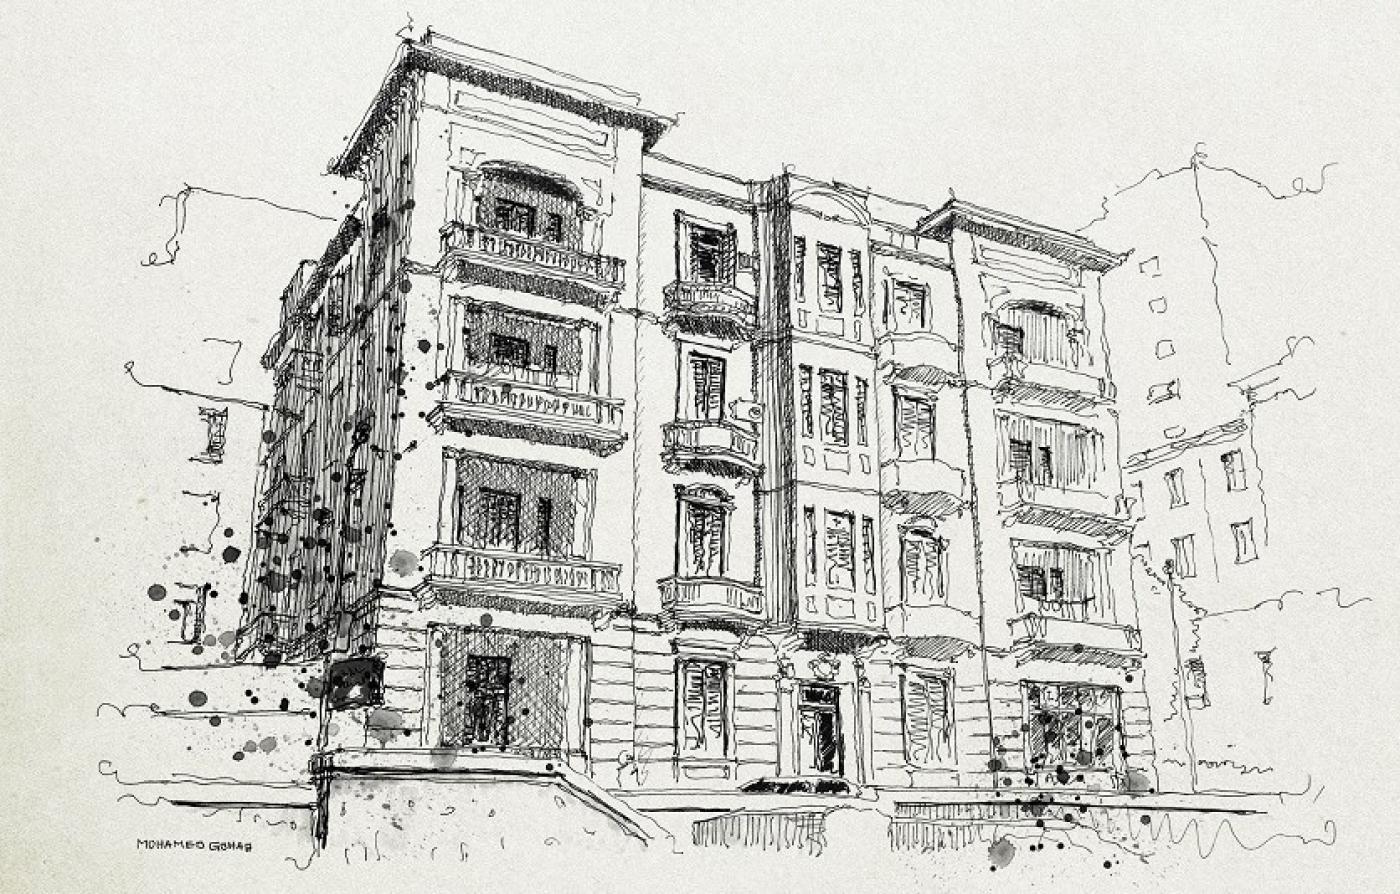 The crumbling bride of the med using pencil and paper to preserve alexandria